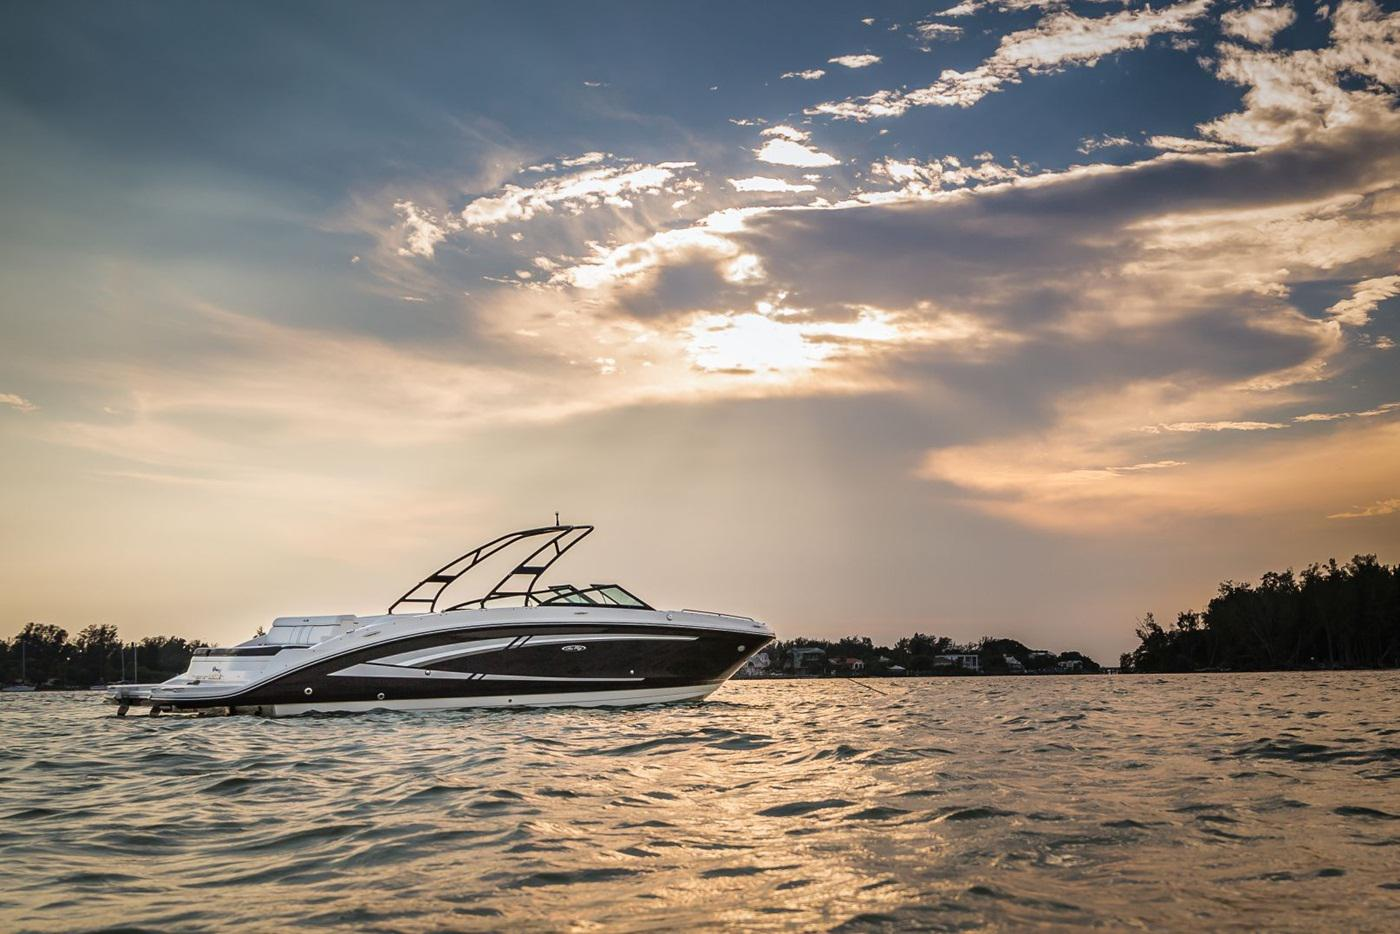 2019 Sea Ray SDX 270 for sale in Louisville, KY  Sea Ray of Louisville